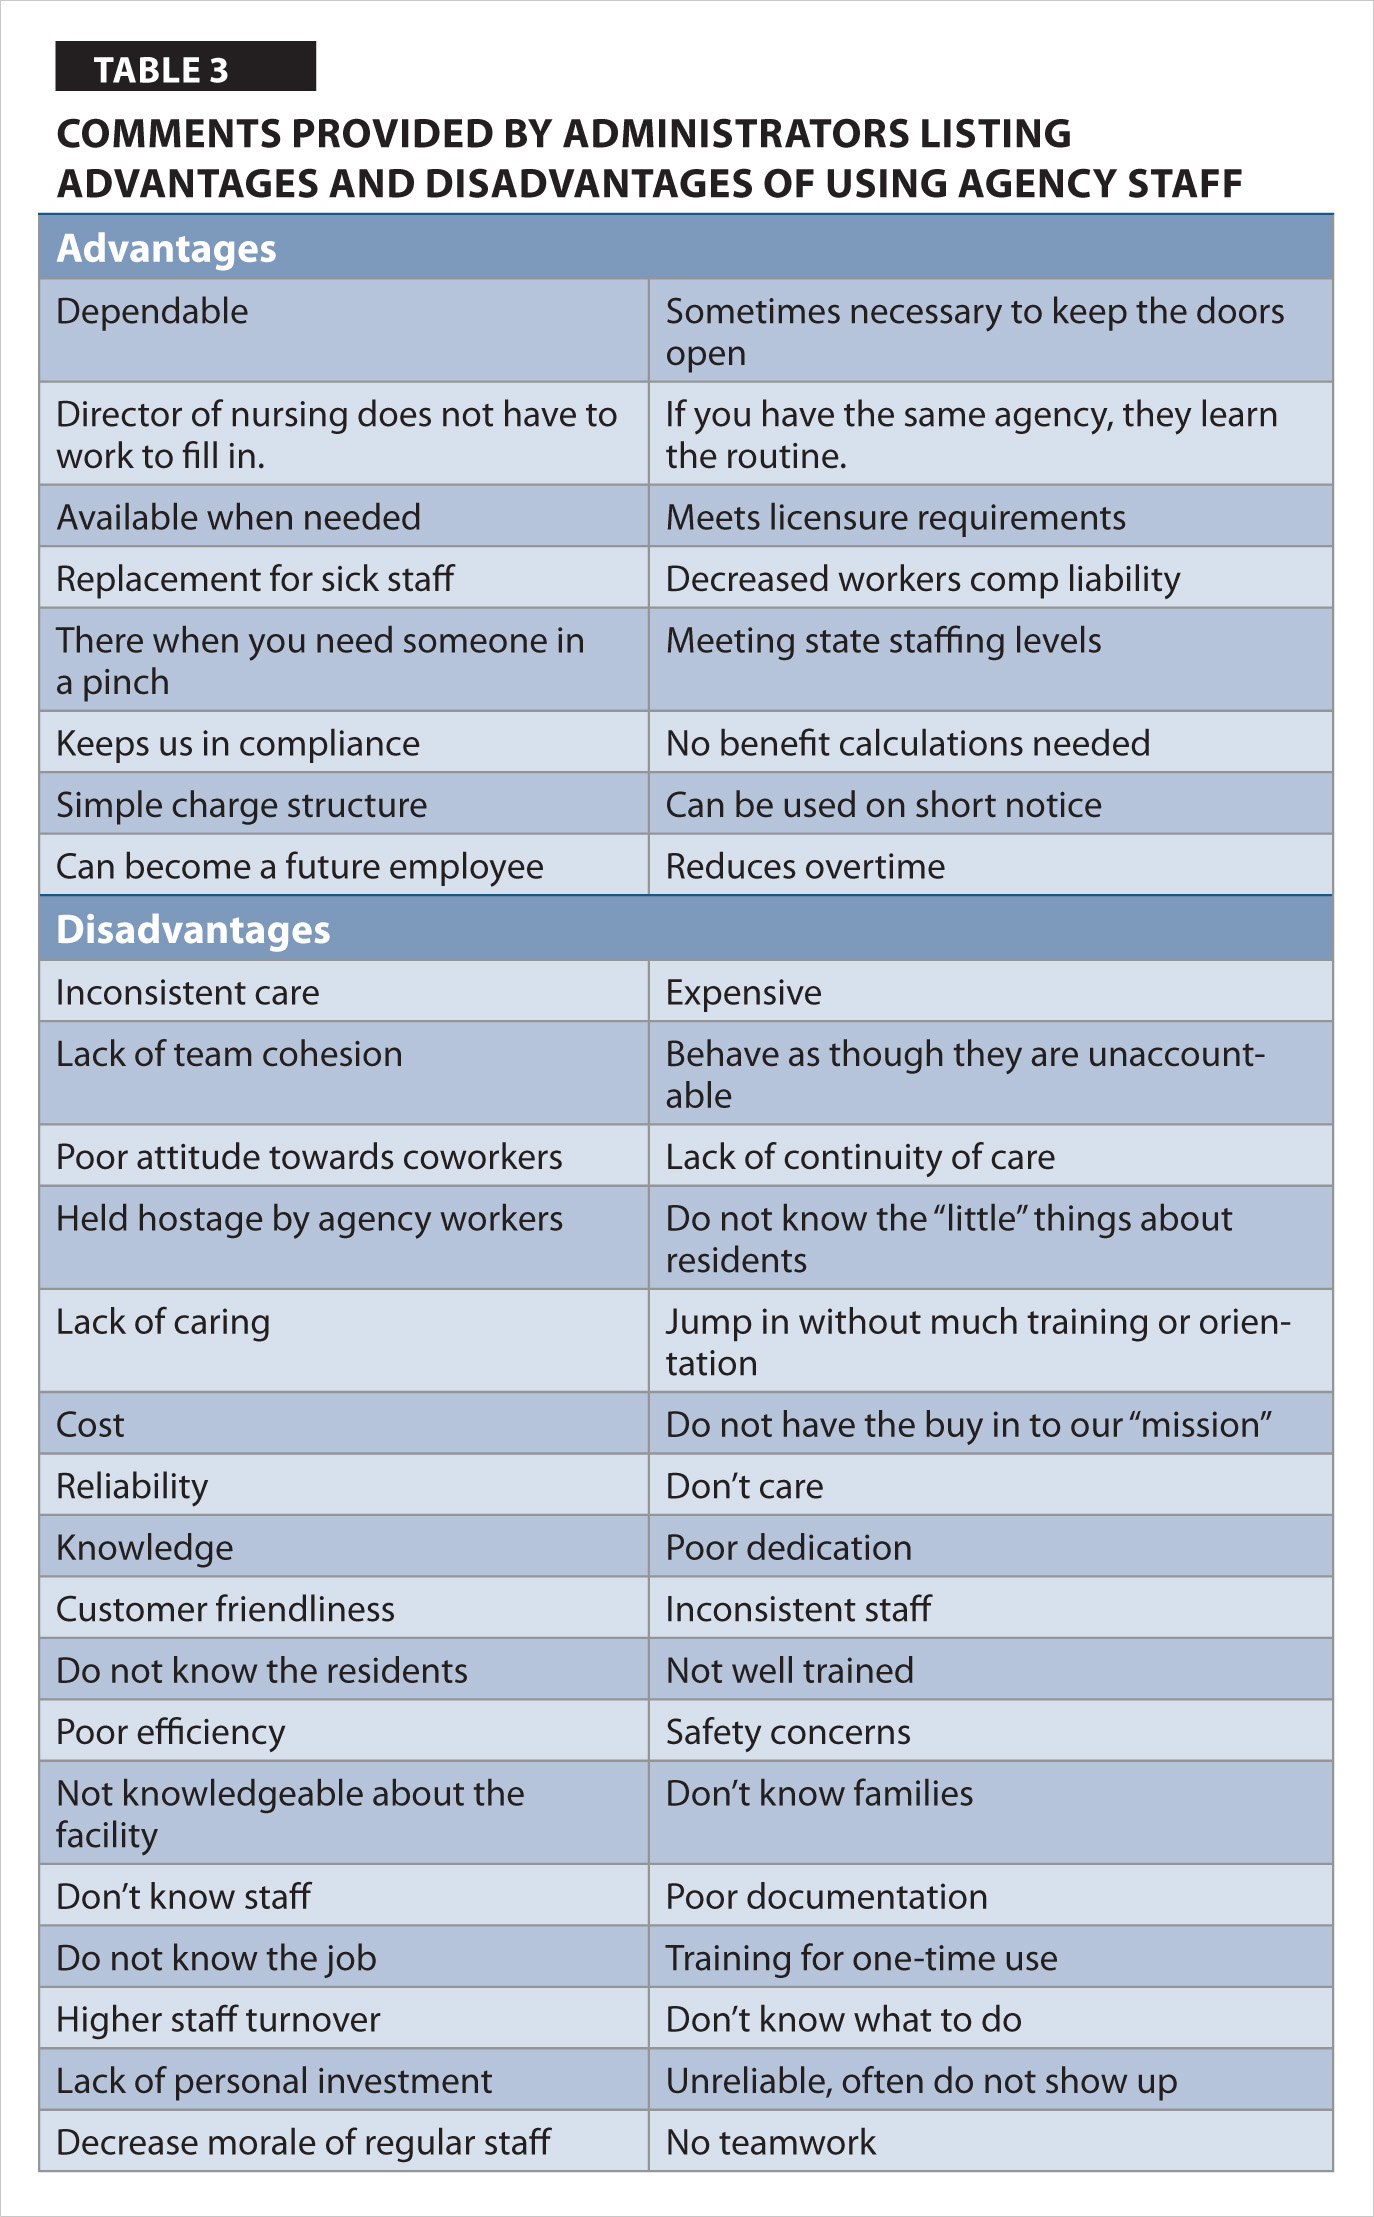 perceived advantages and disadvantages of using agency staff comments provided by administrators listing advantages and disadvantages of using agency staff